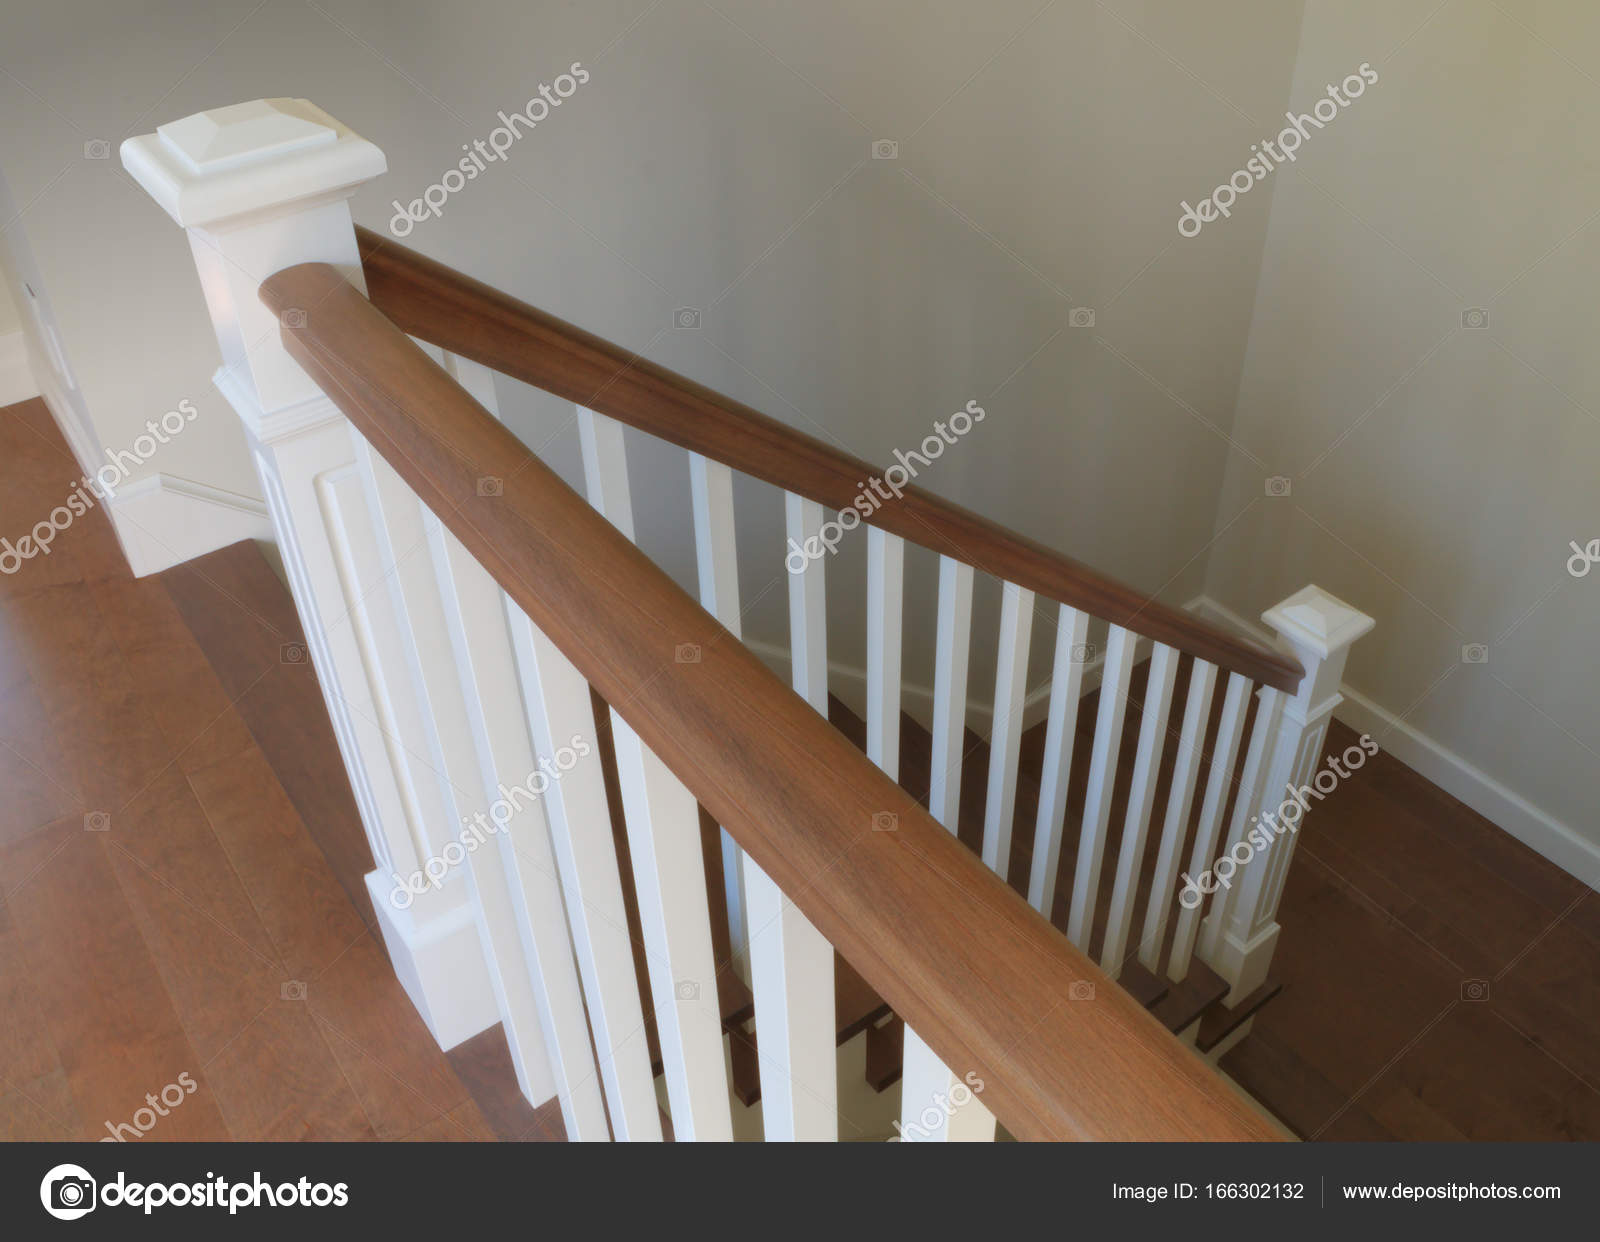 White staircase interior classic design wood steps handrails ramp 20